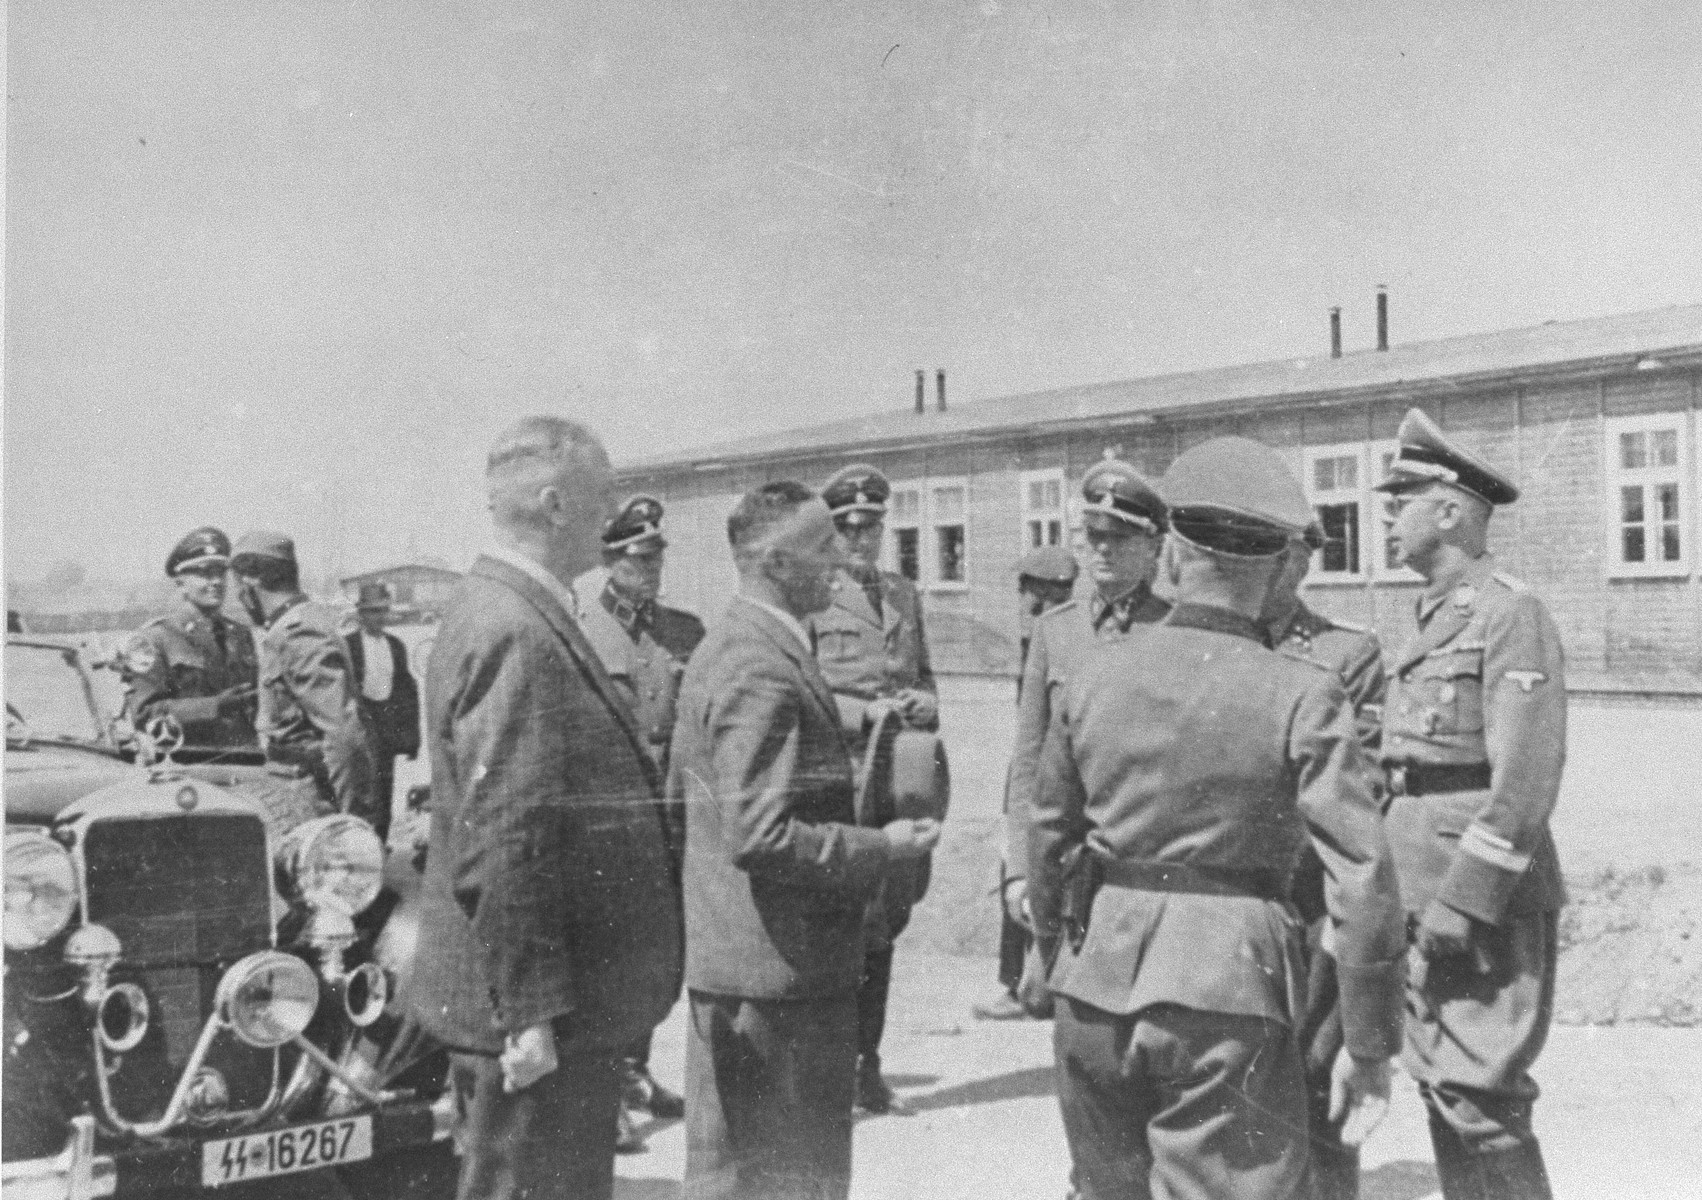 Reichsfuehrer SS Heinrich Himmler converses with Max Faust (holding the fedora) during a tour of the Monowitz-Buna building site.  Faust, who was an IG Farben engineer, was the head of building operations at Monowitz-Buna.